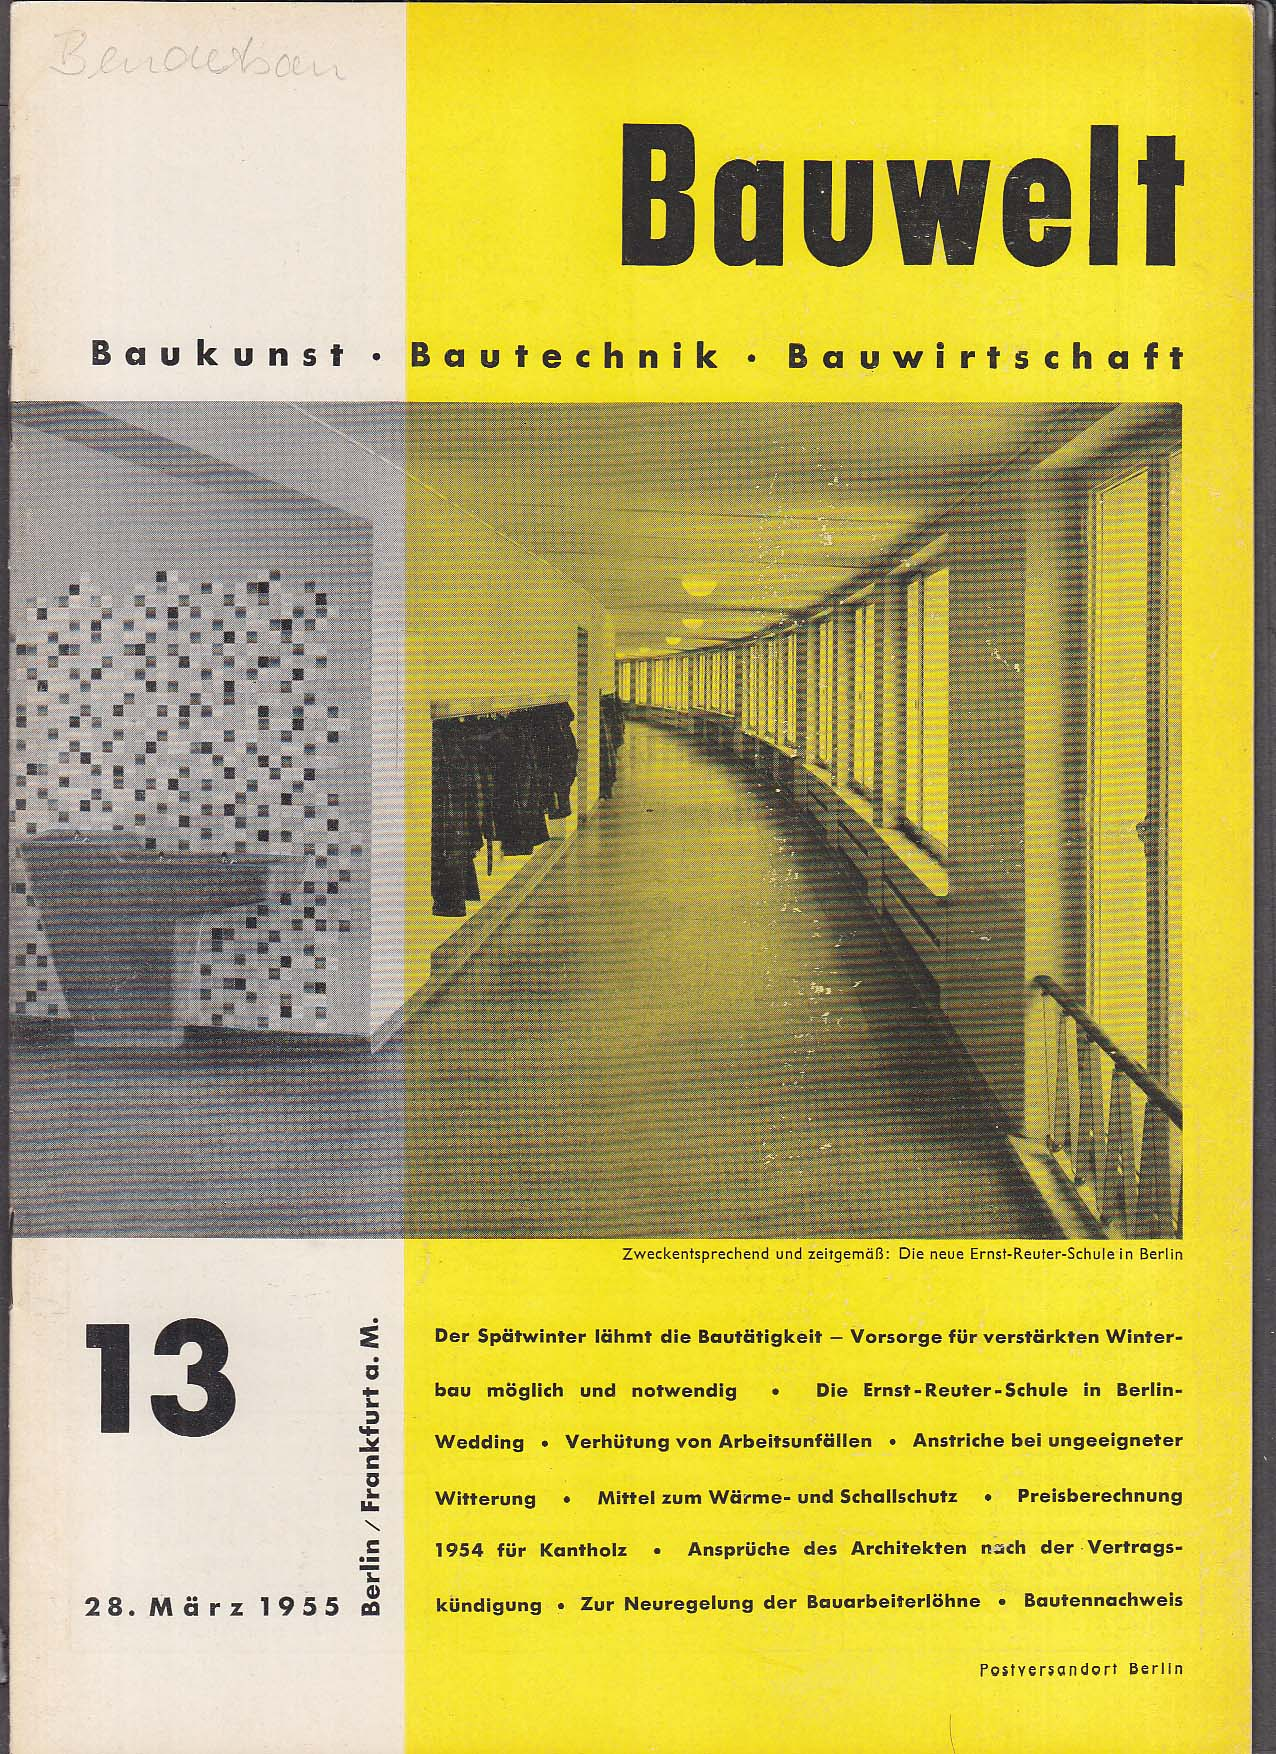 Bauwelt German architecture magazine 3/28/1955 13